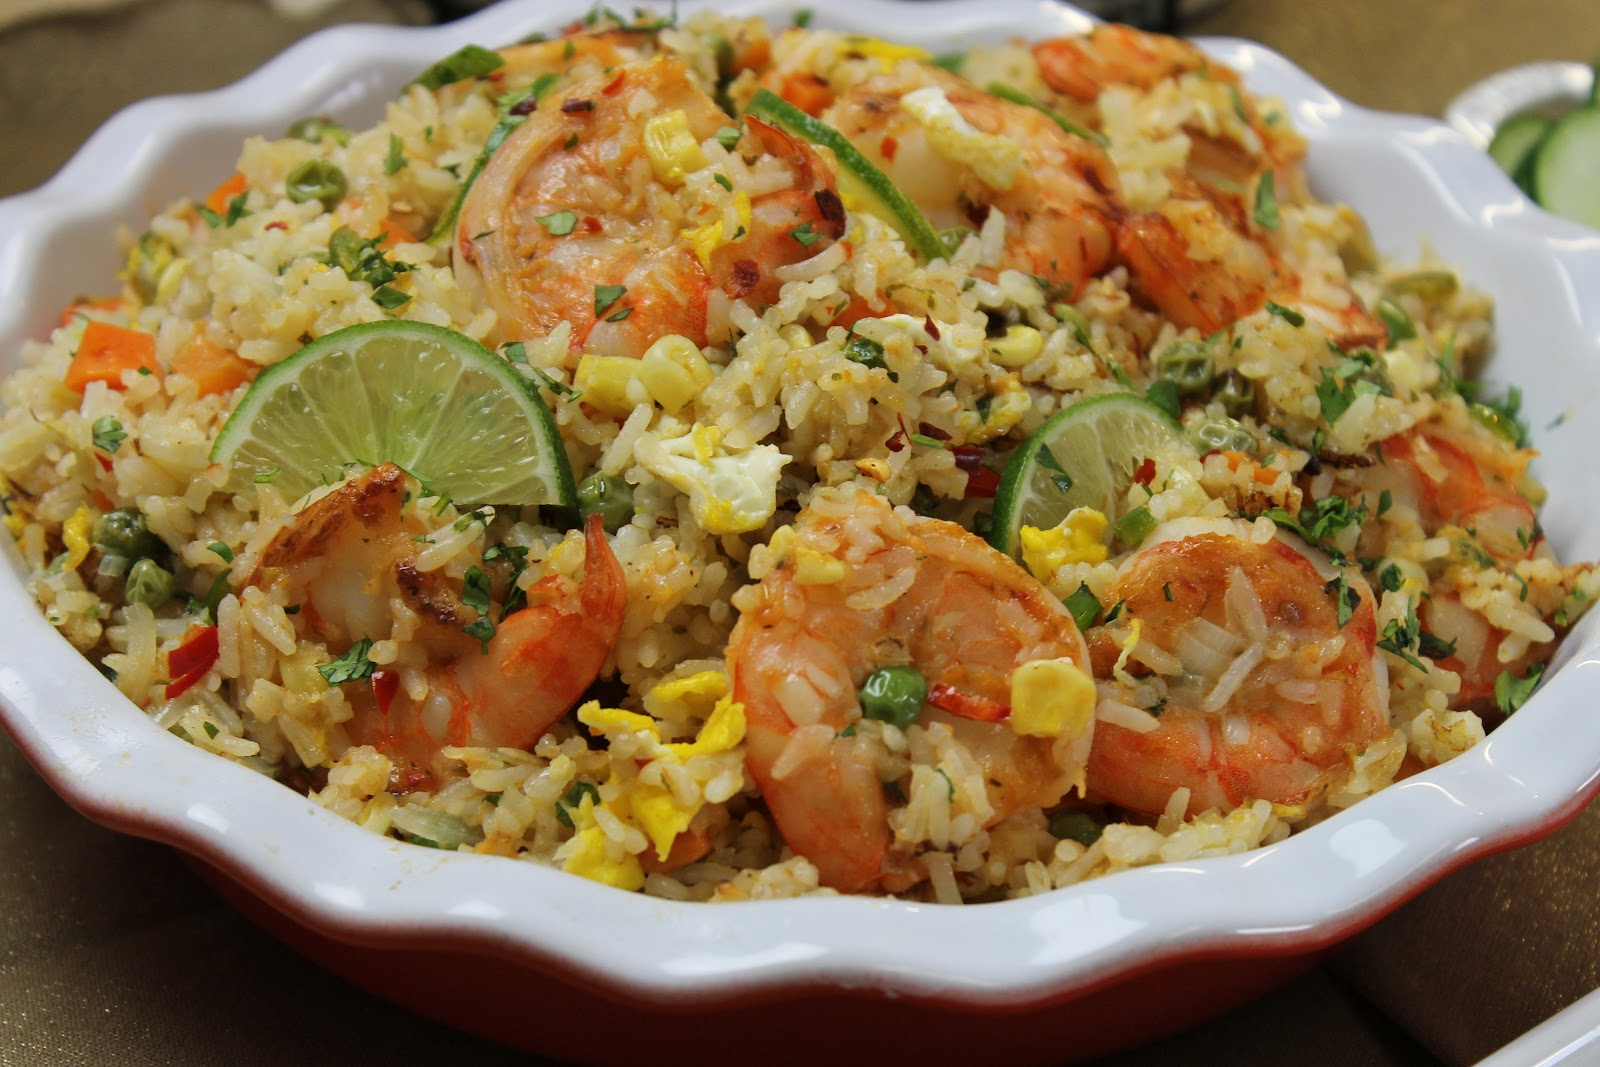 CW's Cafe Today - From Pantry To Table: Thai Style Fried Rice